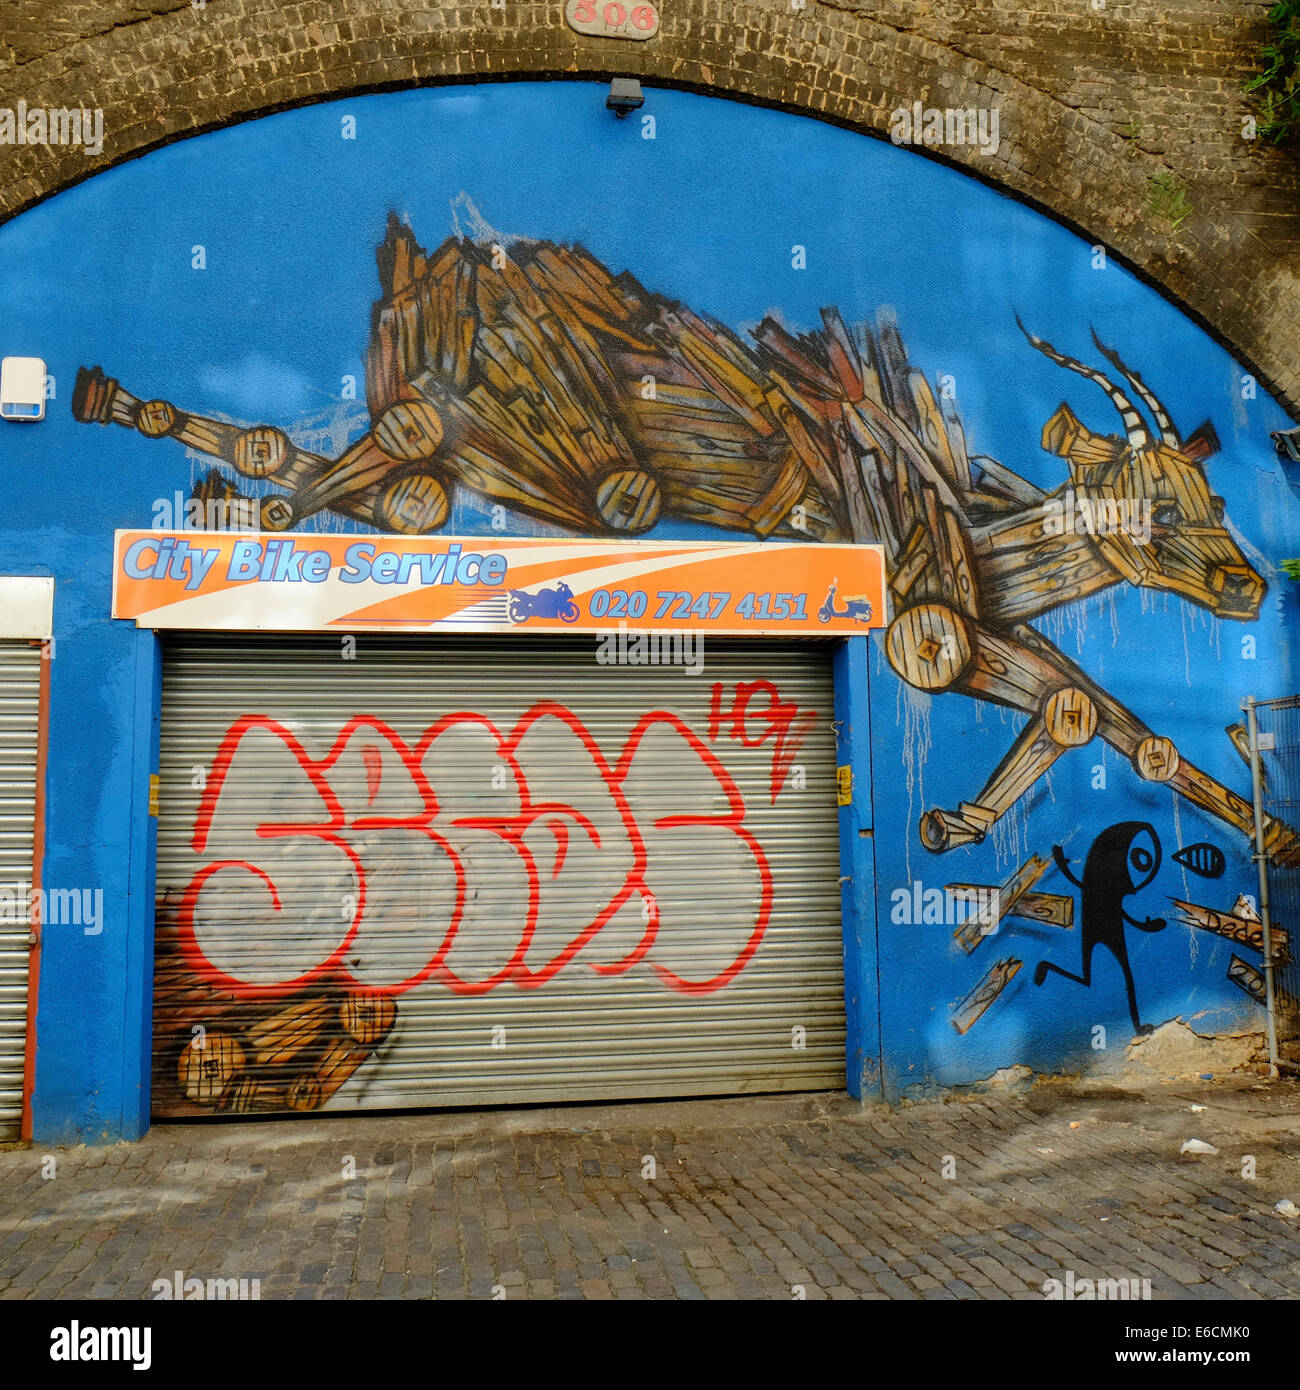 City Bike Service with leaping goats graffiti art in Shoreditch, London - Stock Image